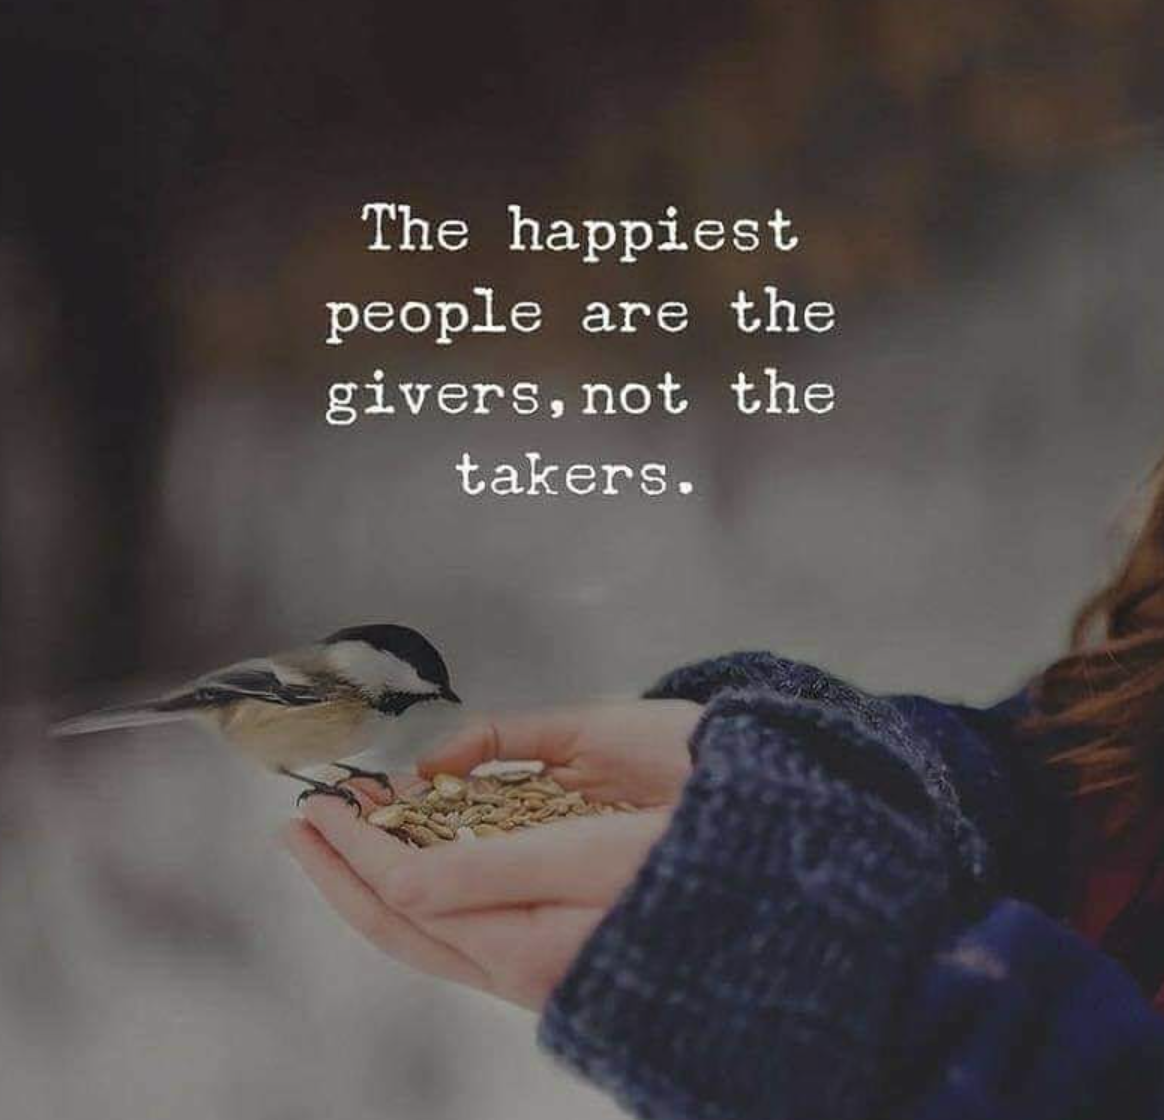 [Image] The happiest people are the givers, not the takers.